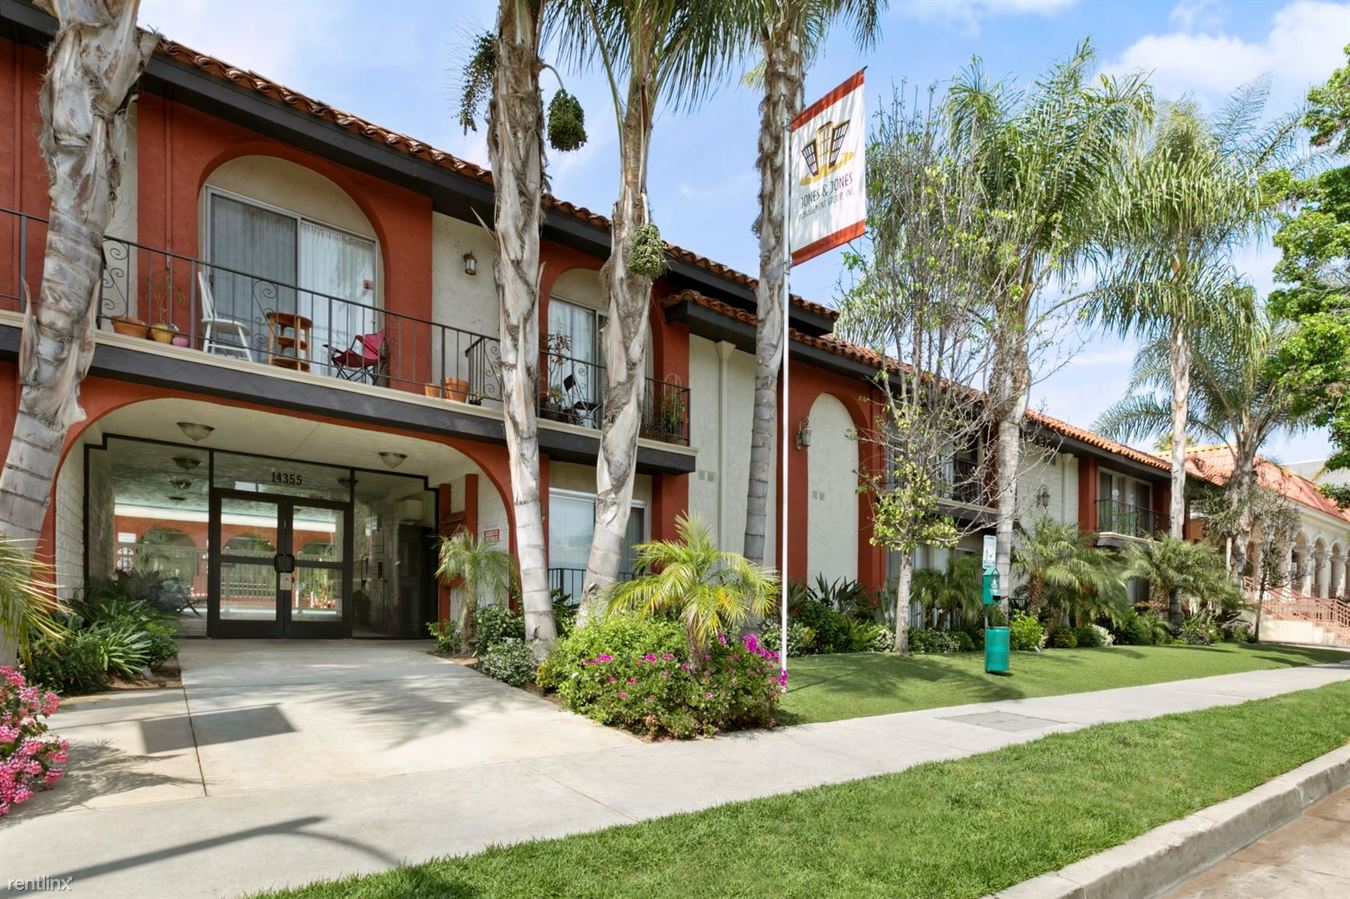 1 Bedroom 1 Bathroom Apartment for rent at Parkview Terrace in Sherman Oaks, CA